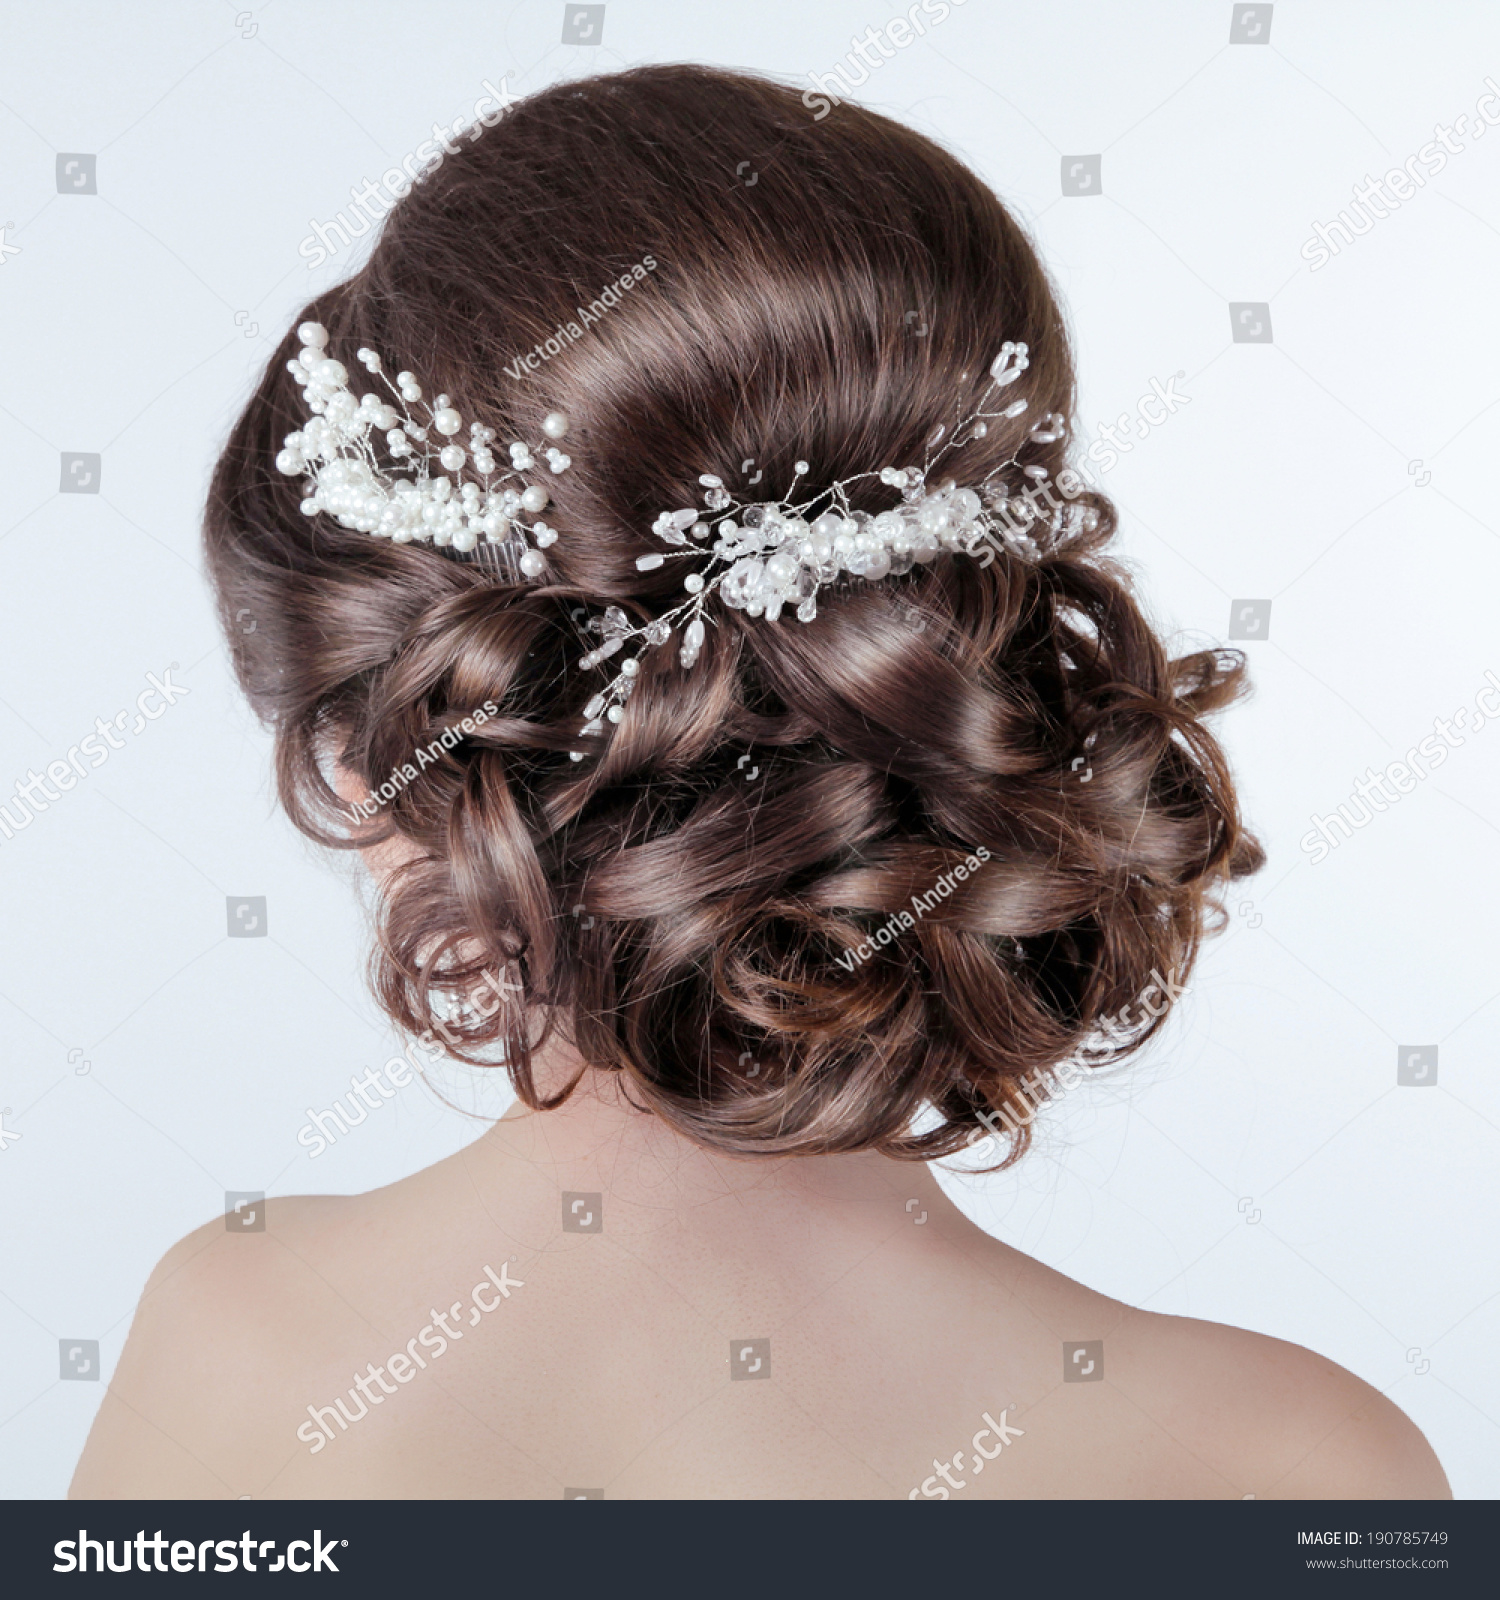 Wedding Hairstyles Brunette: Brown Hair Styling Brunette Girl Curly Stock Photo